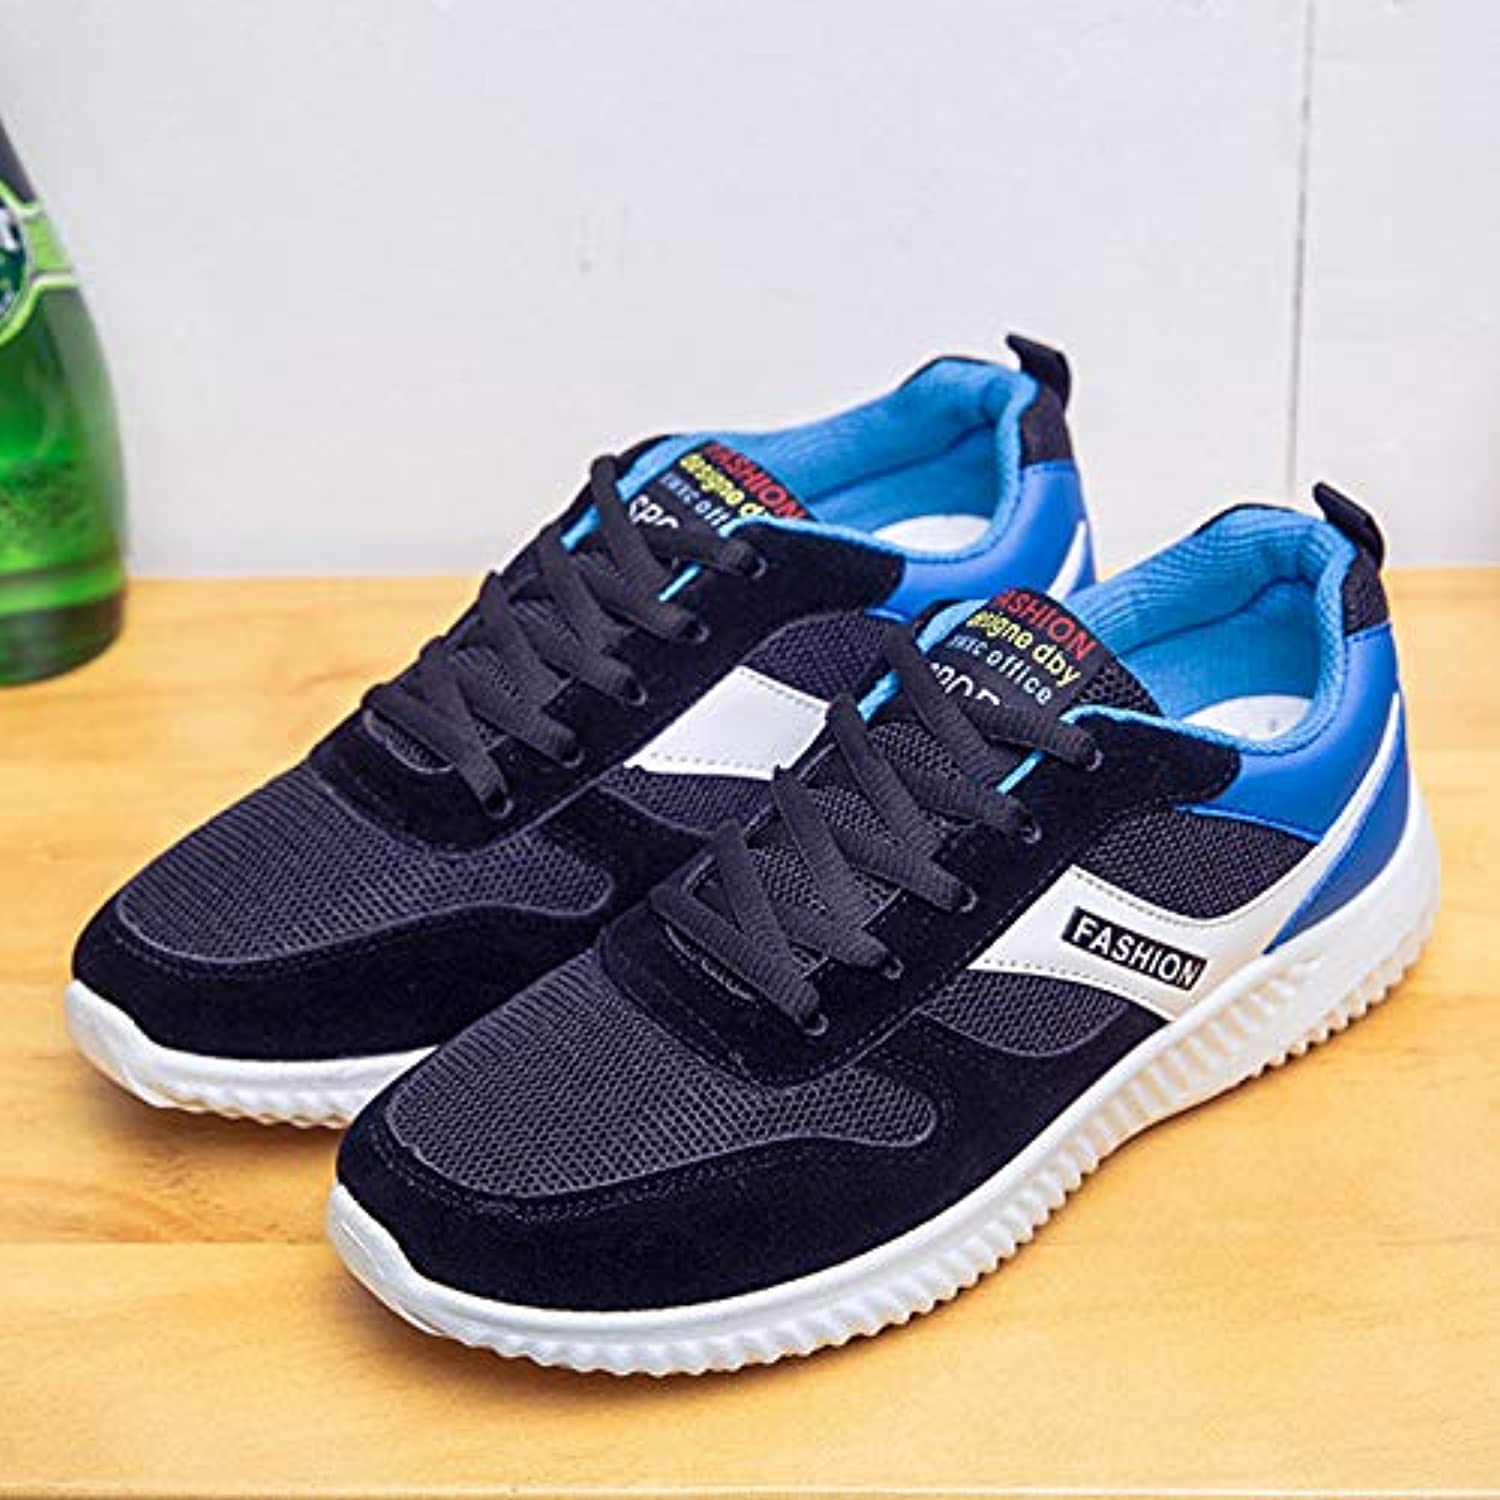 LOVDRAM Men's shoes Spring And Autumn Korean Men'S shoes Tide shoes Men'S Sports shoes Breathable Youth Mesh Running shoes Casual shoes